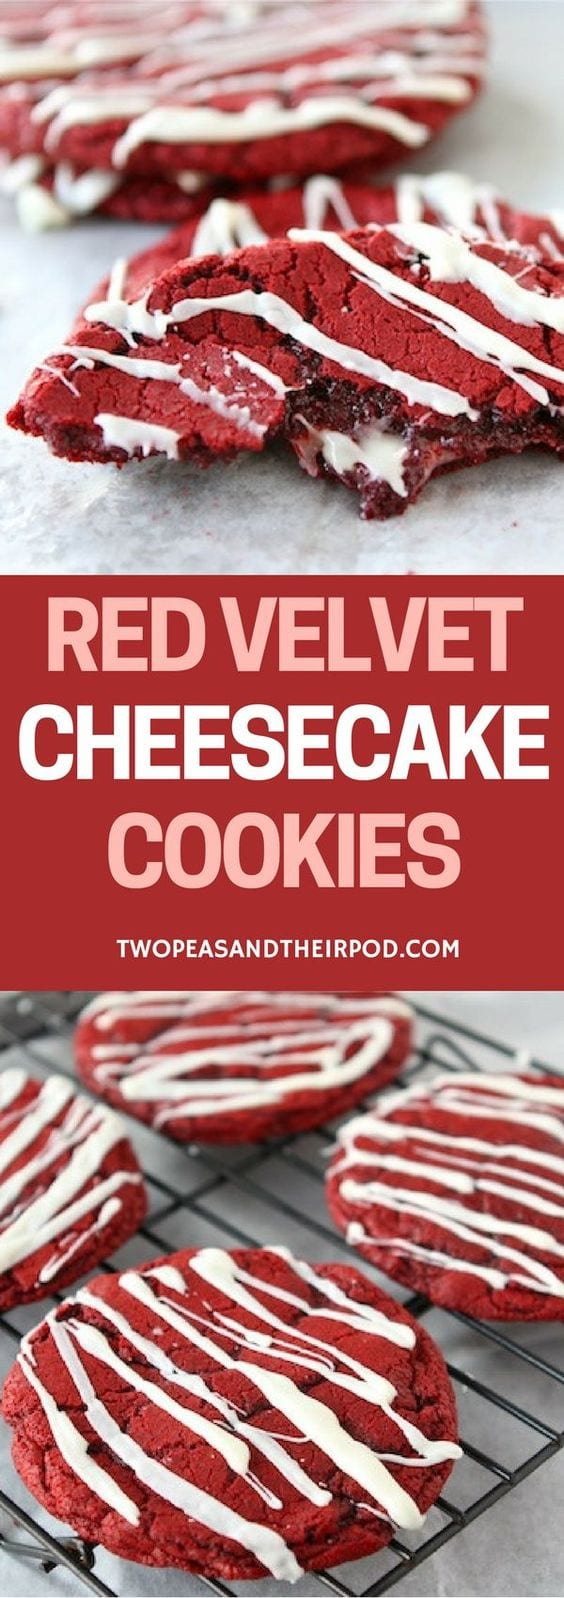 Red Velvet Cheesecake Cookies-you will love the cheesecake surprise in these easy red velvet cookies! #redvelvet #cheesecake #cookies #ValentinesDay #Christmas